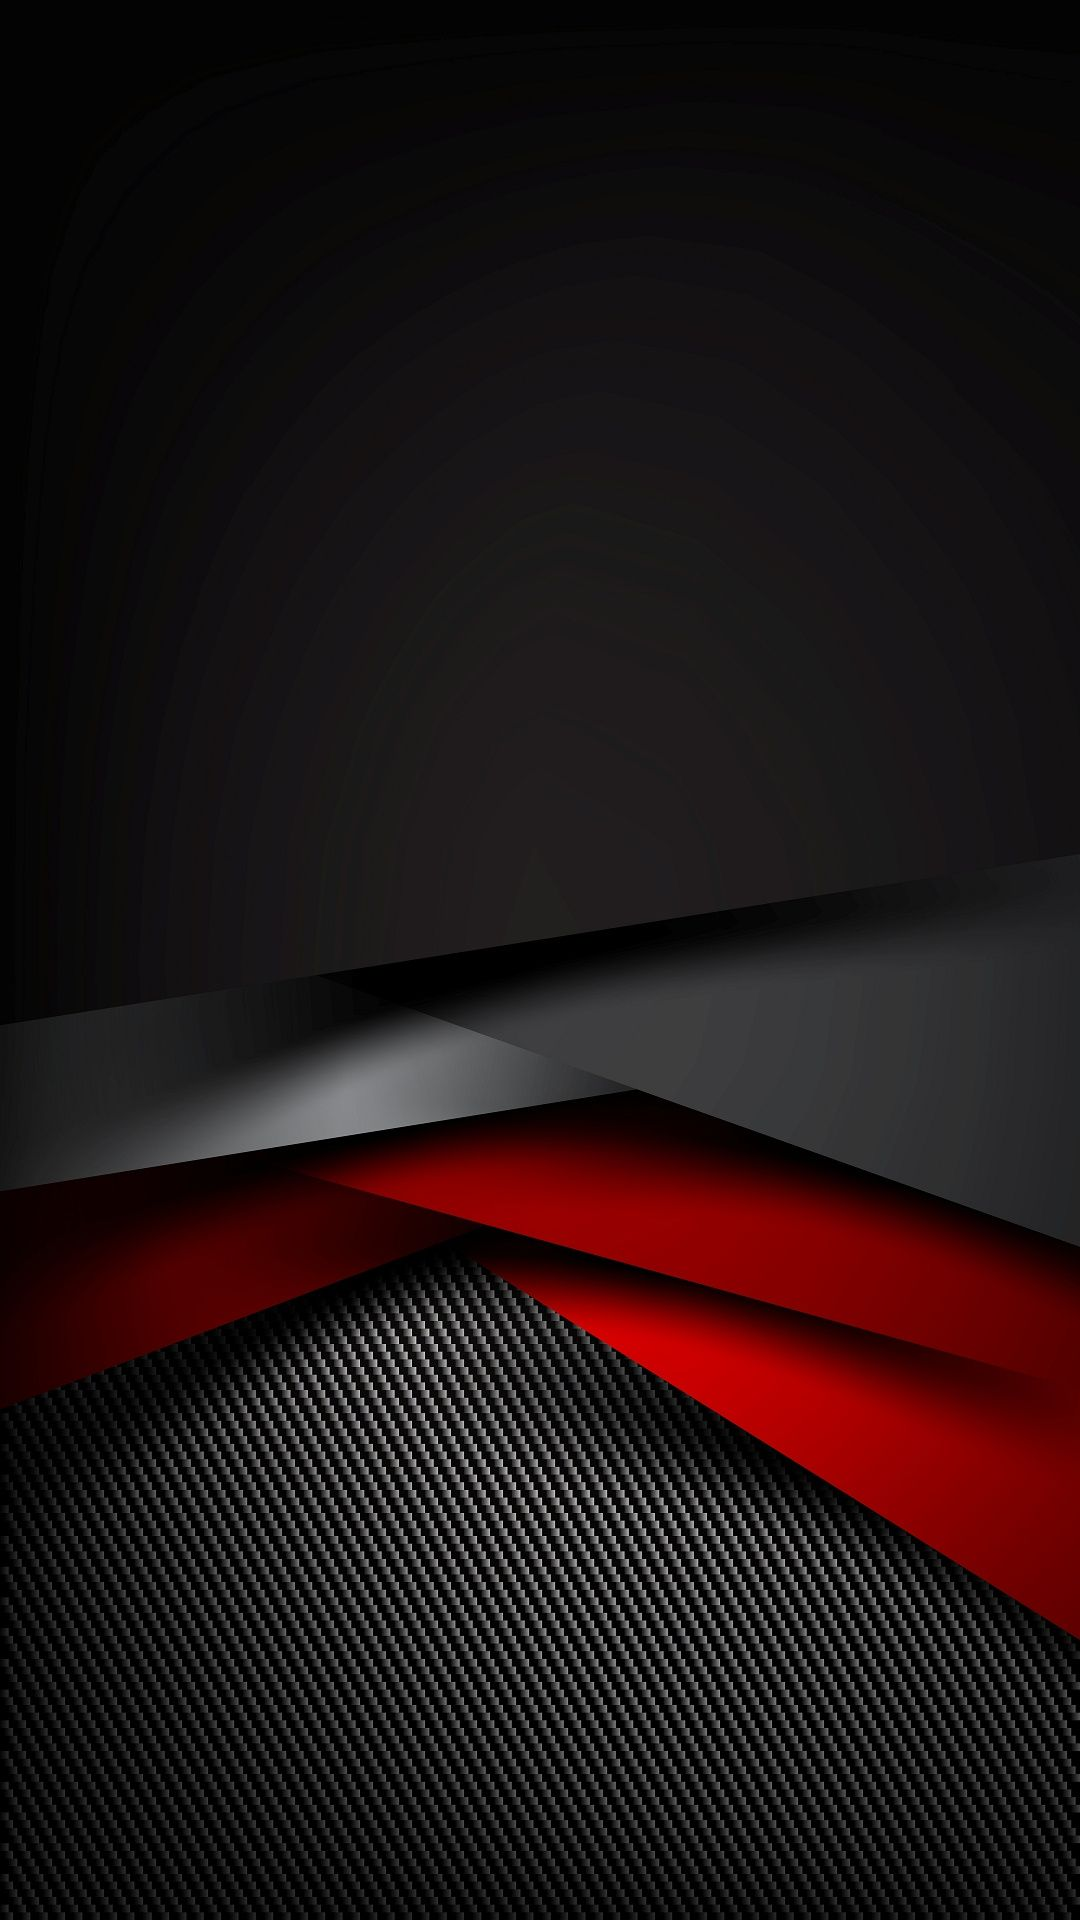 Pin By Venerando Centeno On Abstracts Abstract Wallpaper Backgrounds Abstract Wallpaper Android Wallpaper Red